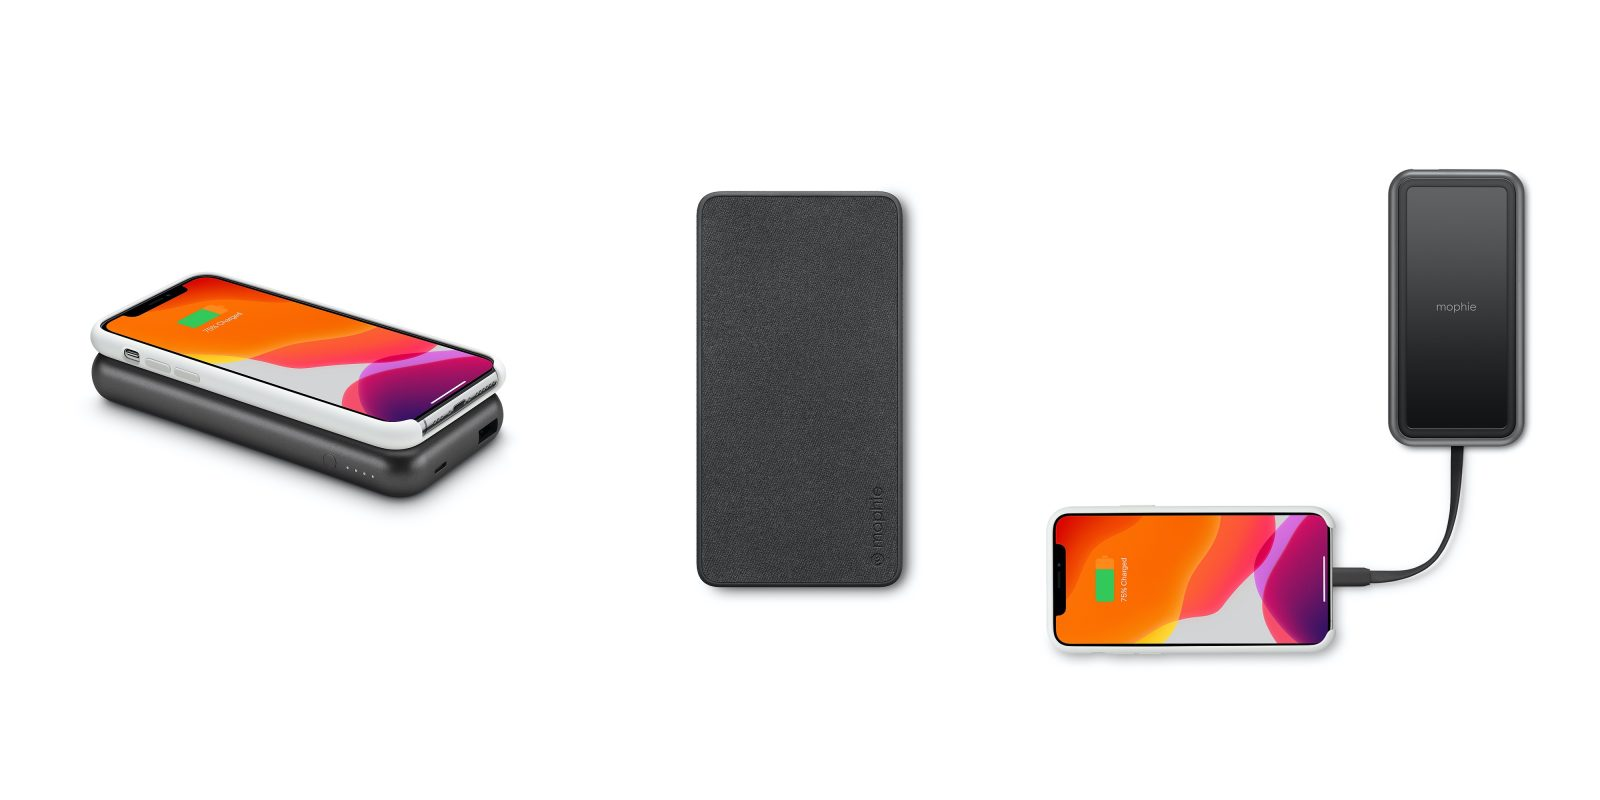 Mophie Unveils Powerstation Chargers With Usb C Lightning And More Available At Apple Stores 9to5mac Genuine mophie power reserve 1x portable mini usb smartphone powerbank charger. mophie unveils powerstation chargers